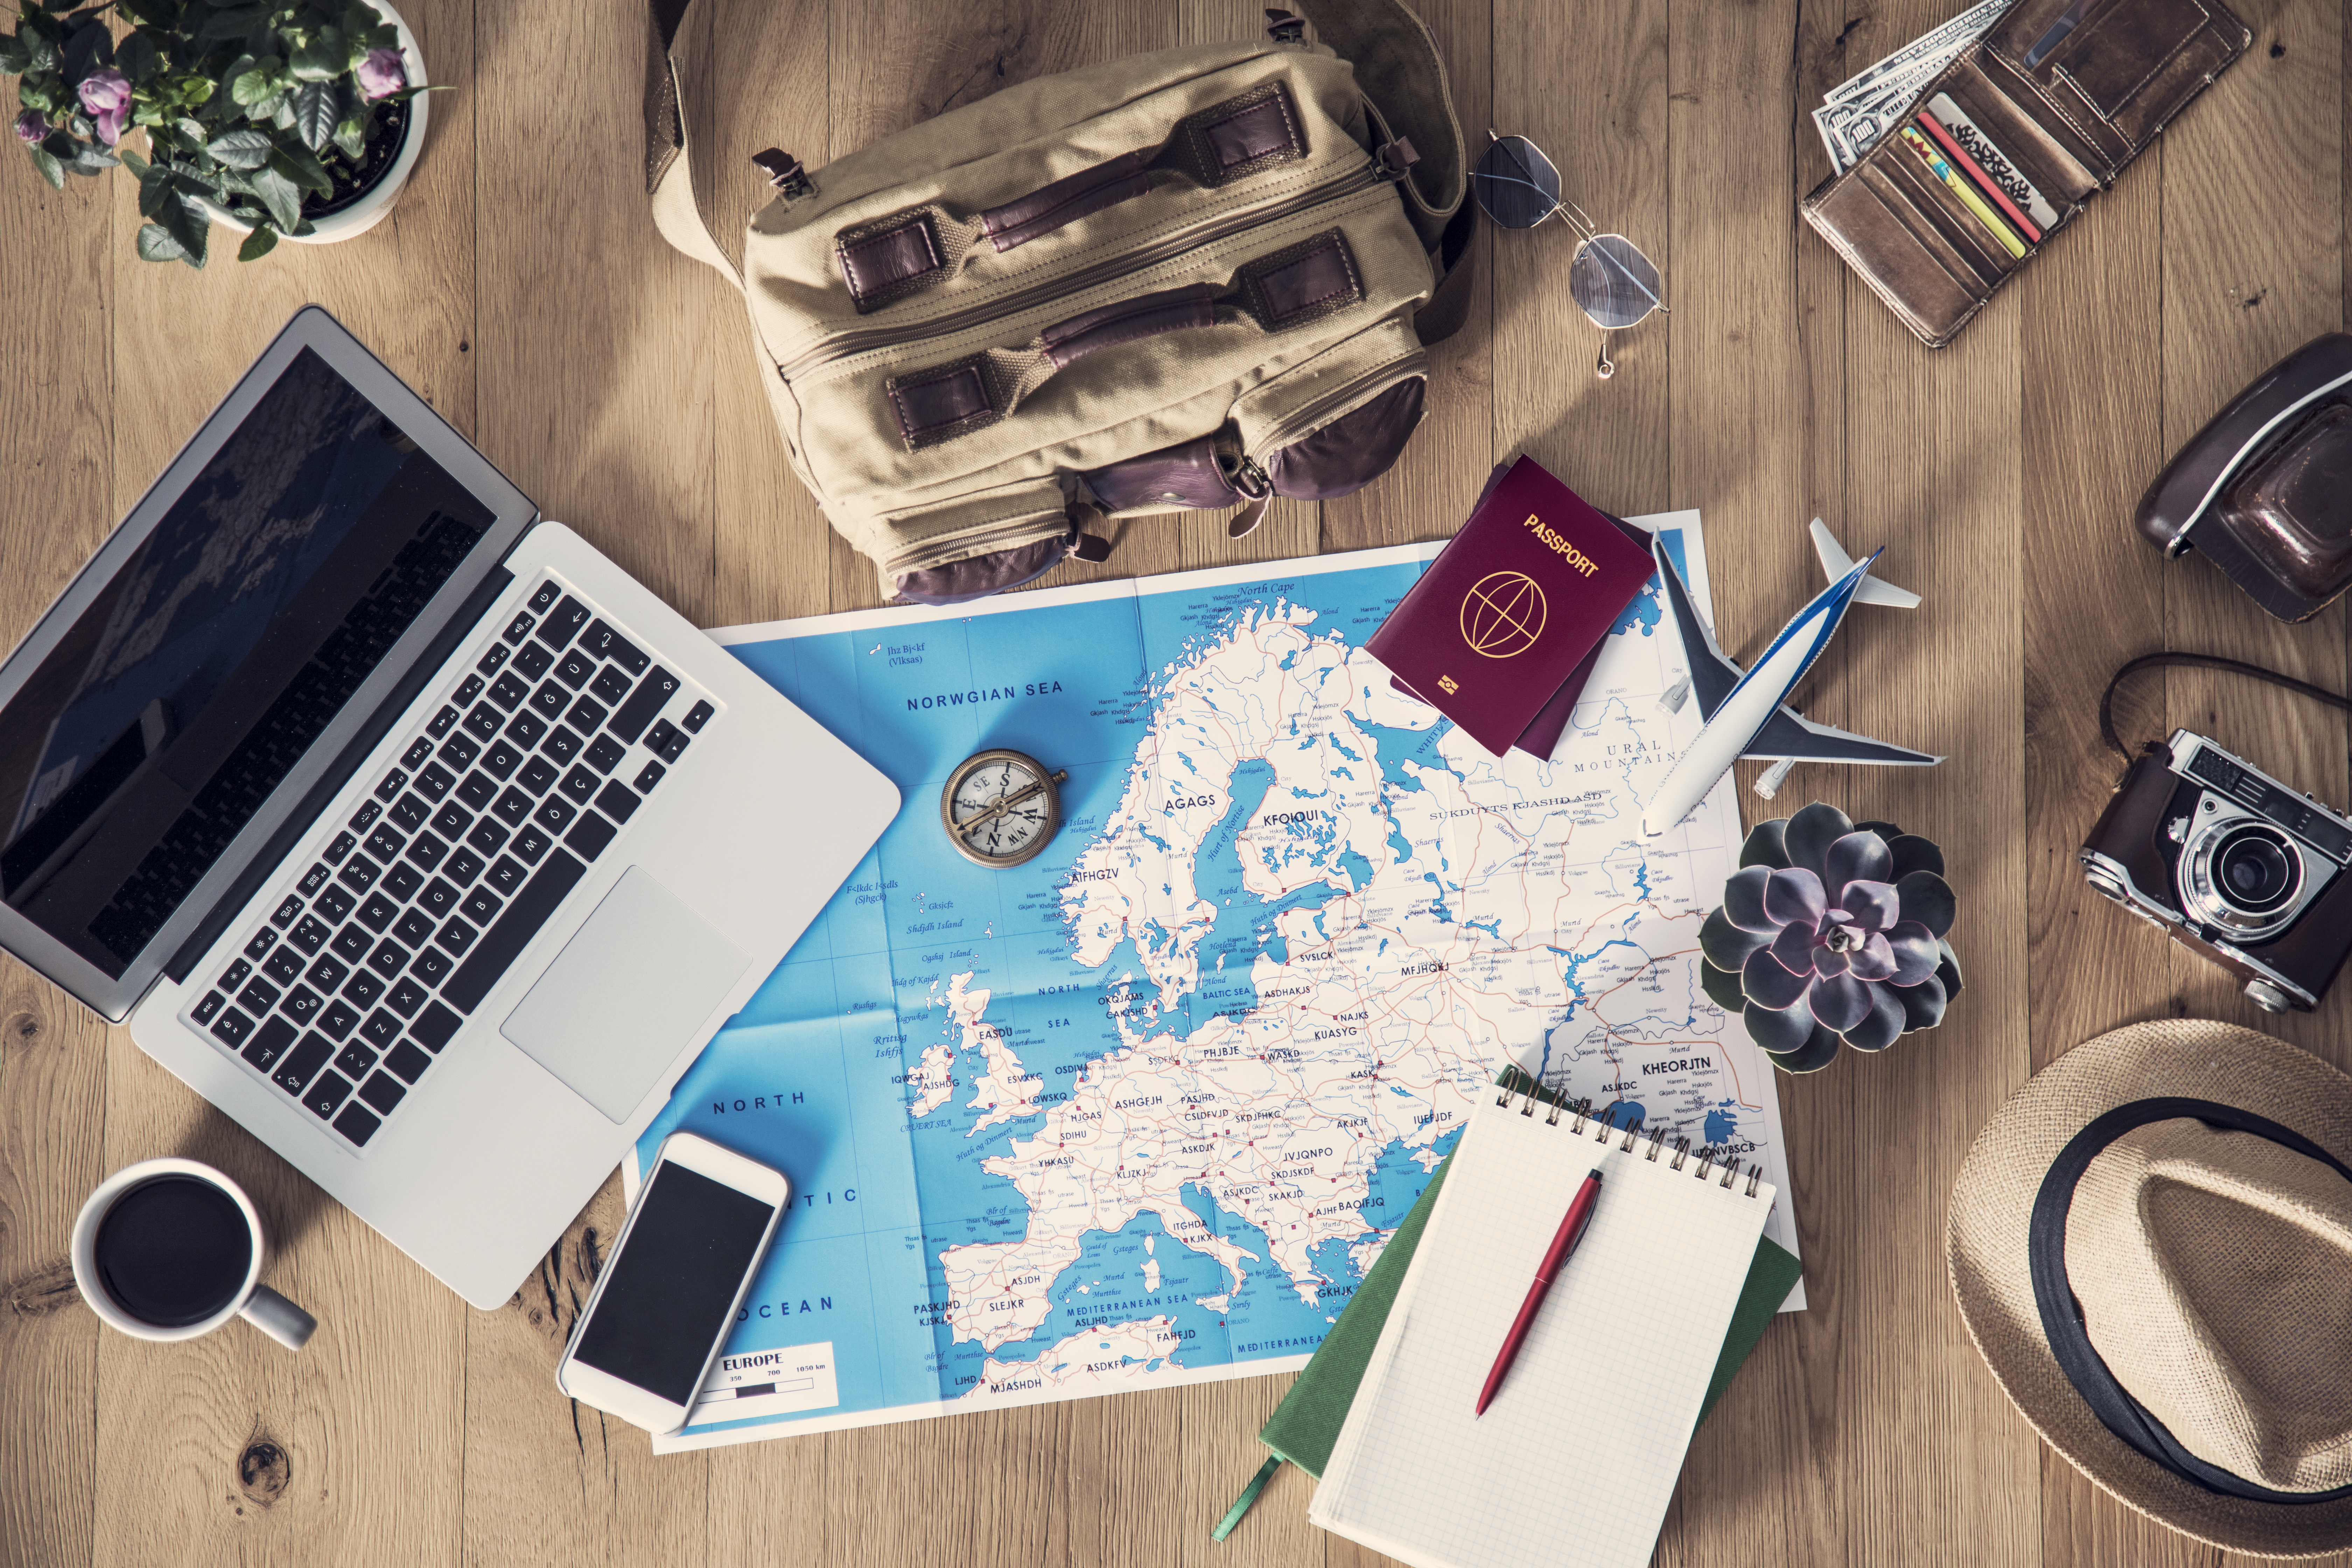 Image of flatlay with laptop, passport, map and camera